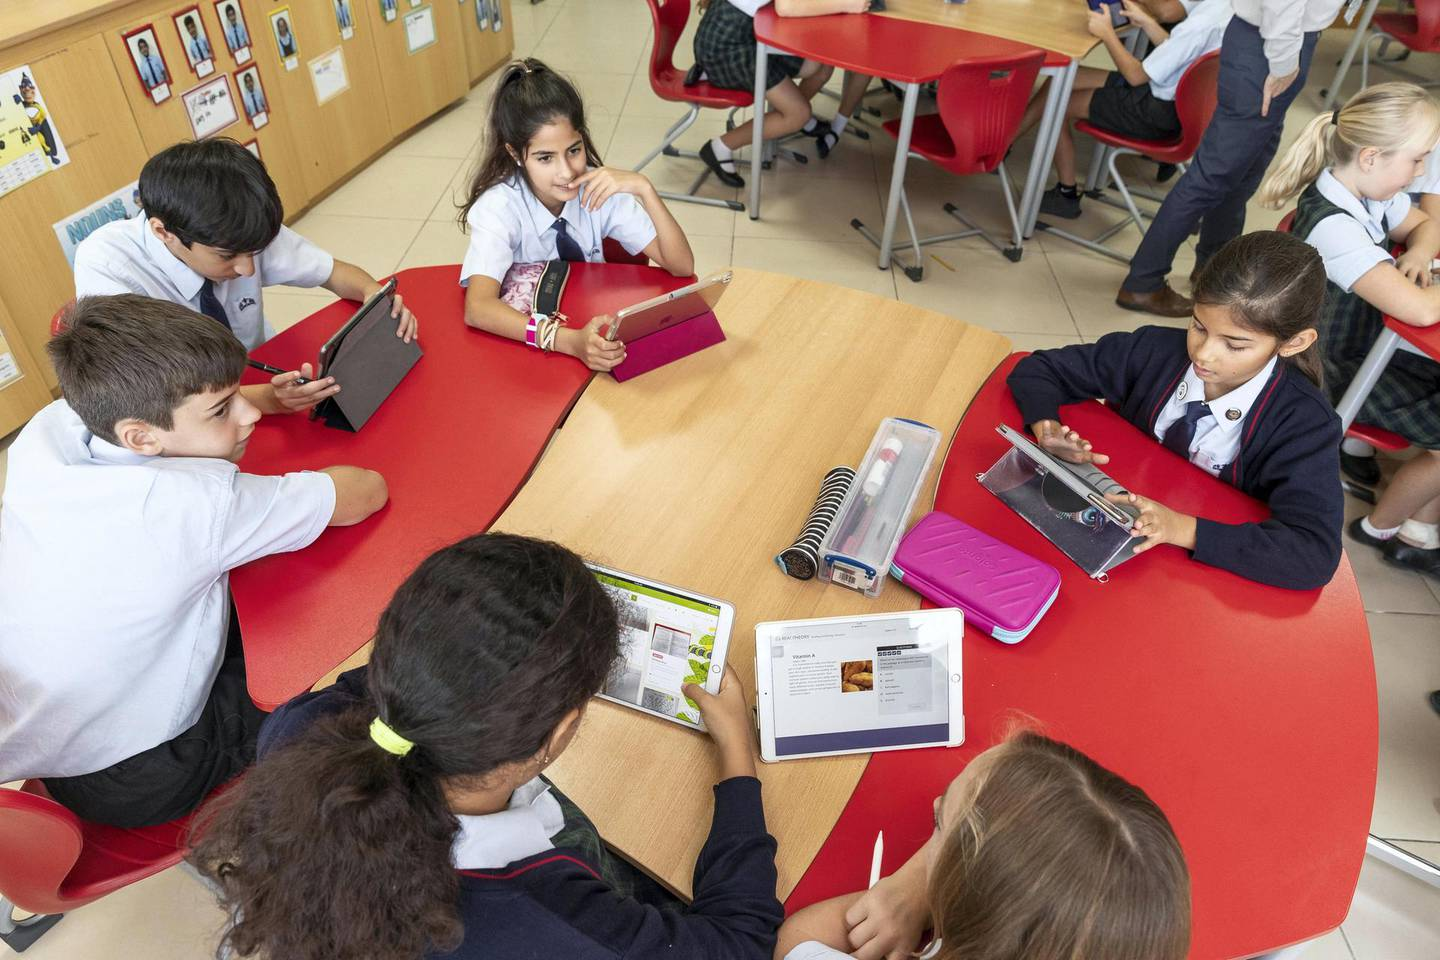 DUBAI, UNITED ARAB EMIRATES. 24 MAY 2018. Students at the Kings School in Al Barsha uses the Pobble app on ipads during a class at school. (Photo: Antonie Robertson/The National) Journalist: Anam Rizvi. Section: National.